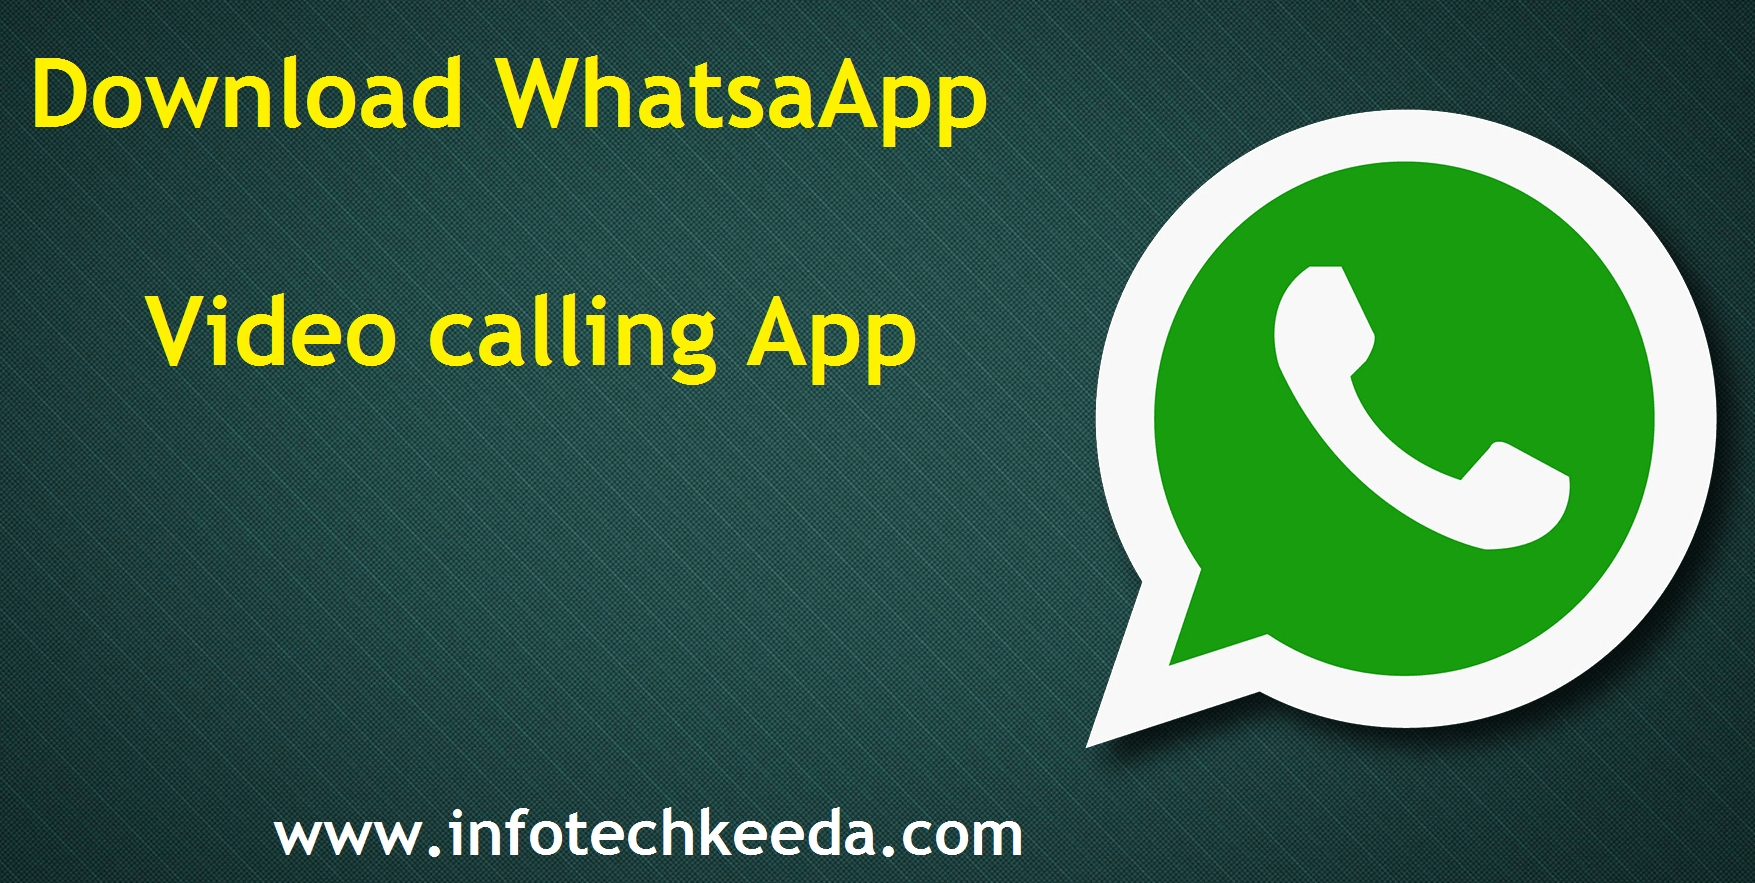 Whatsapp Video calling app download and also become beta